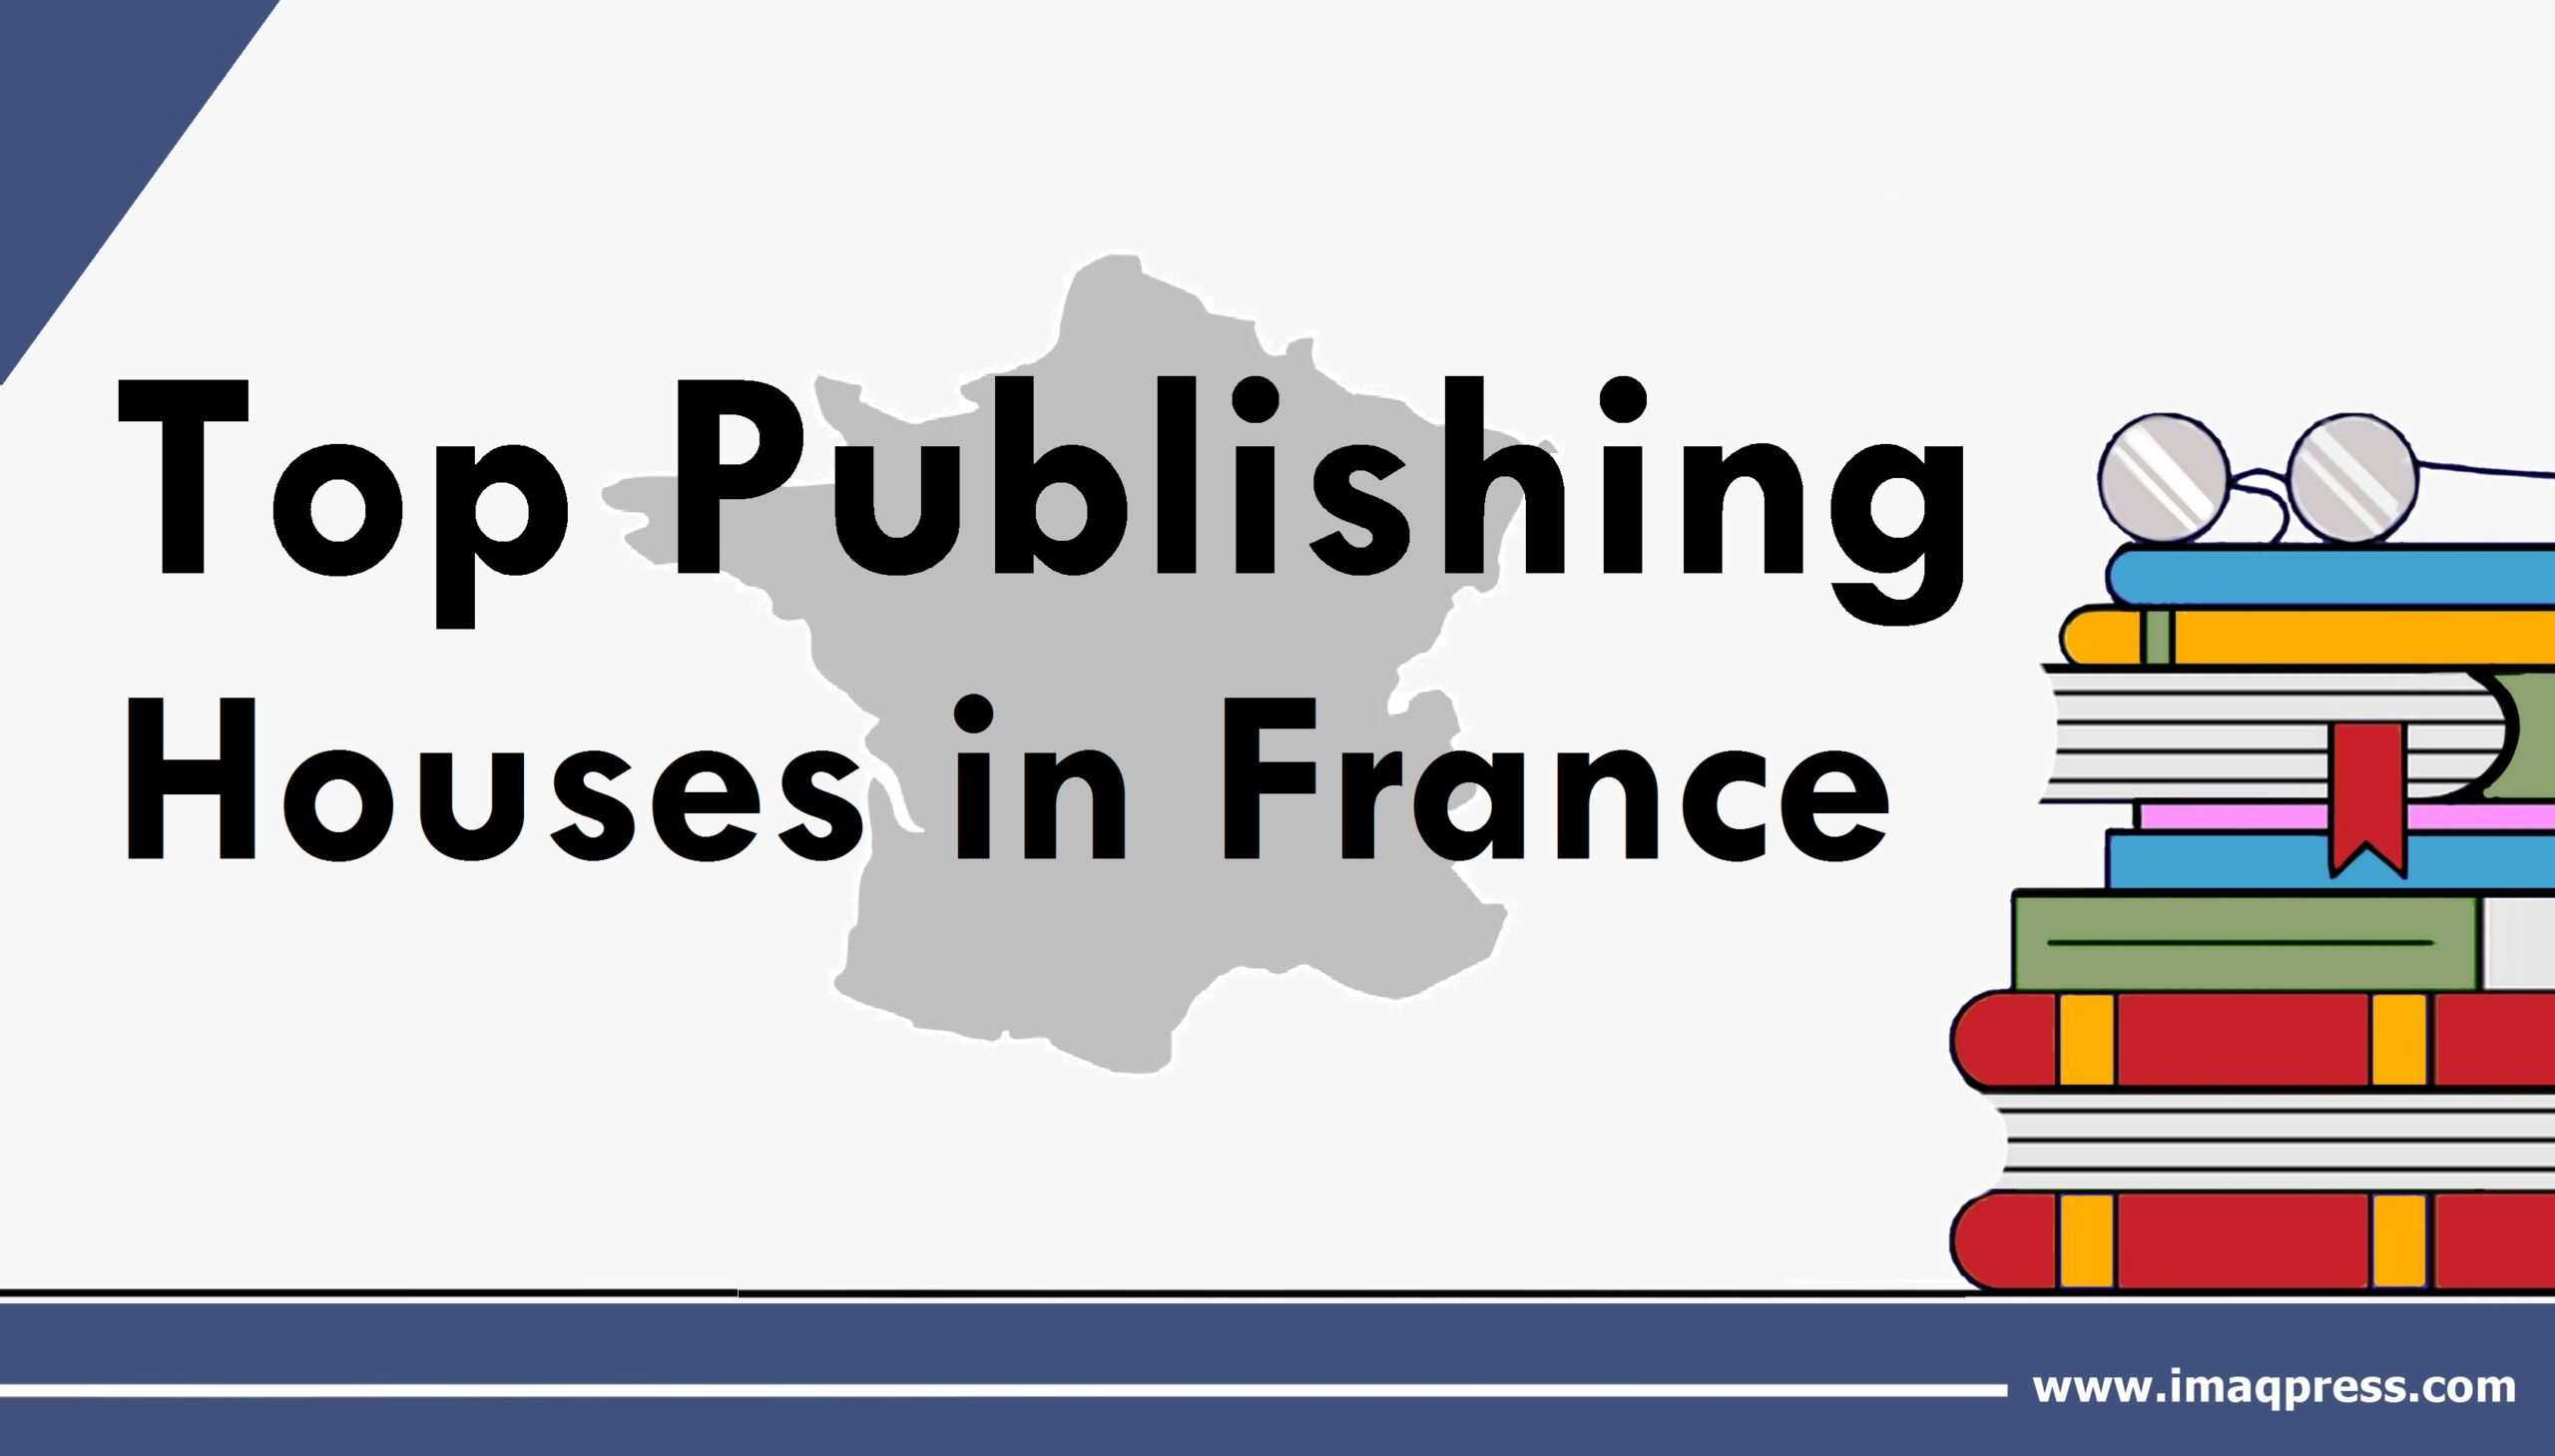 Top Publishing Houses in France